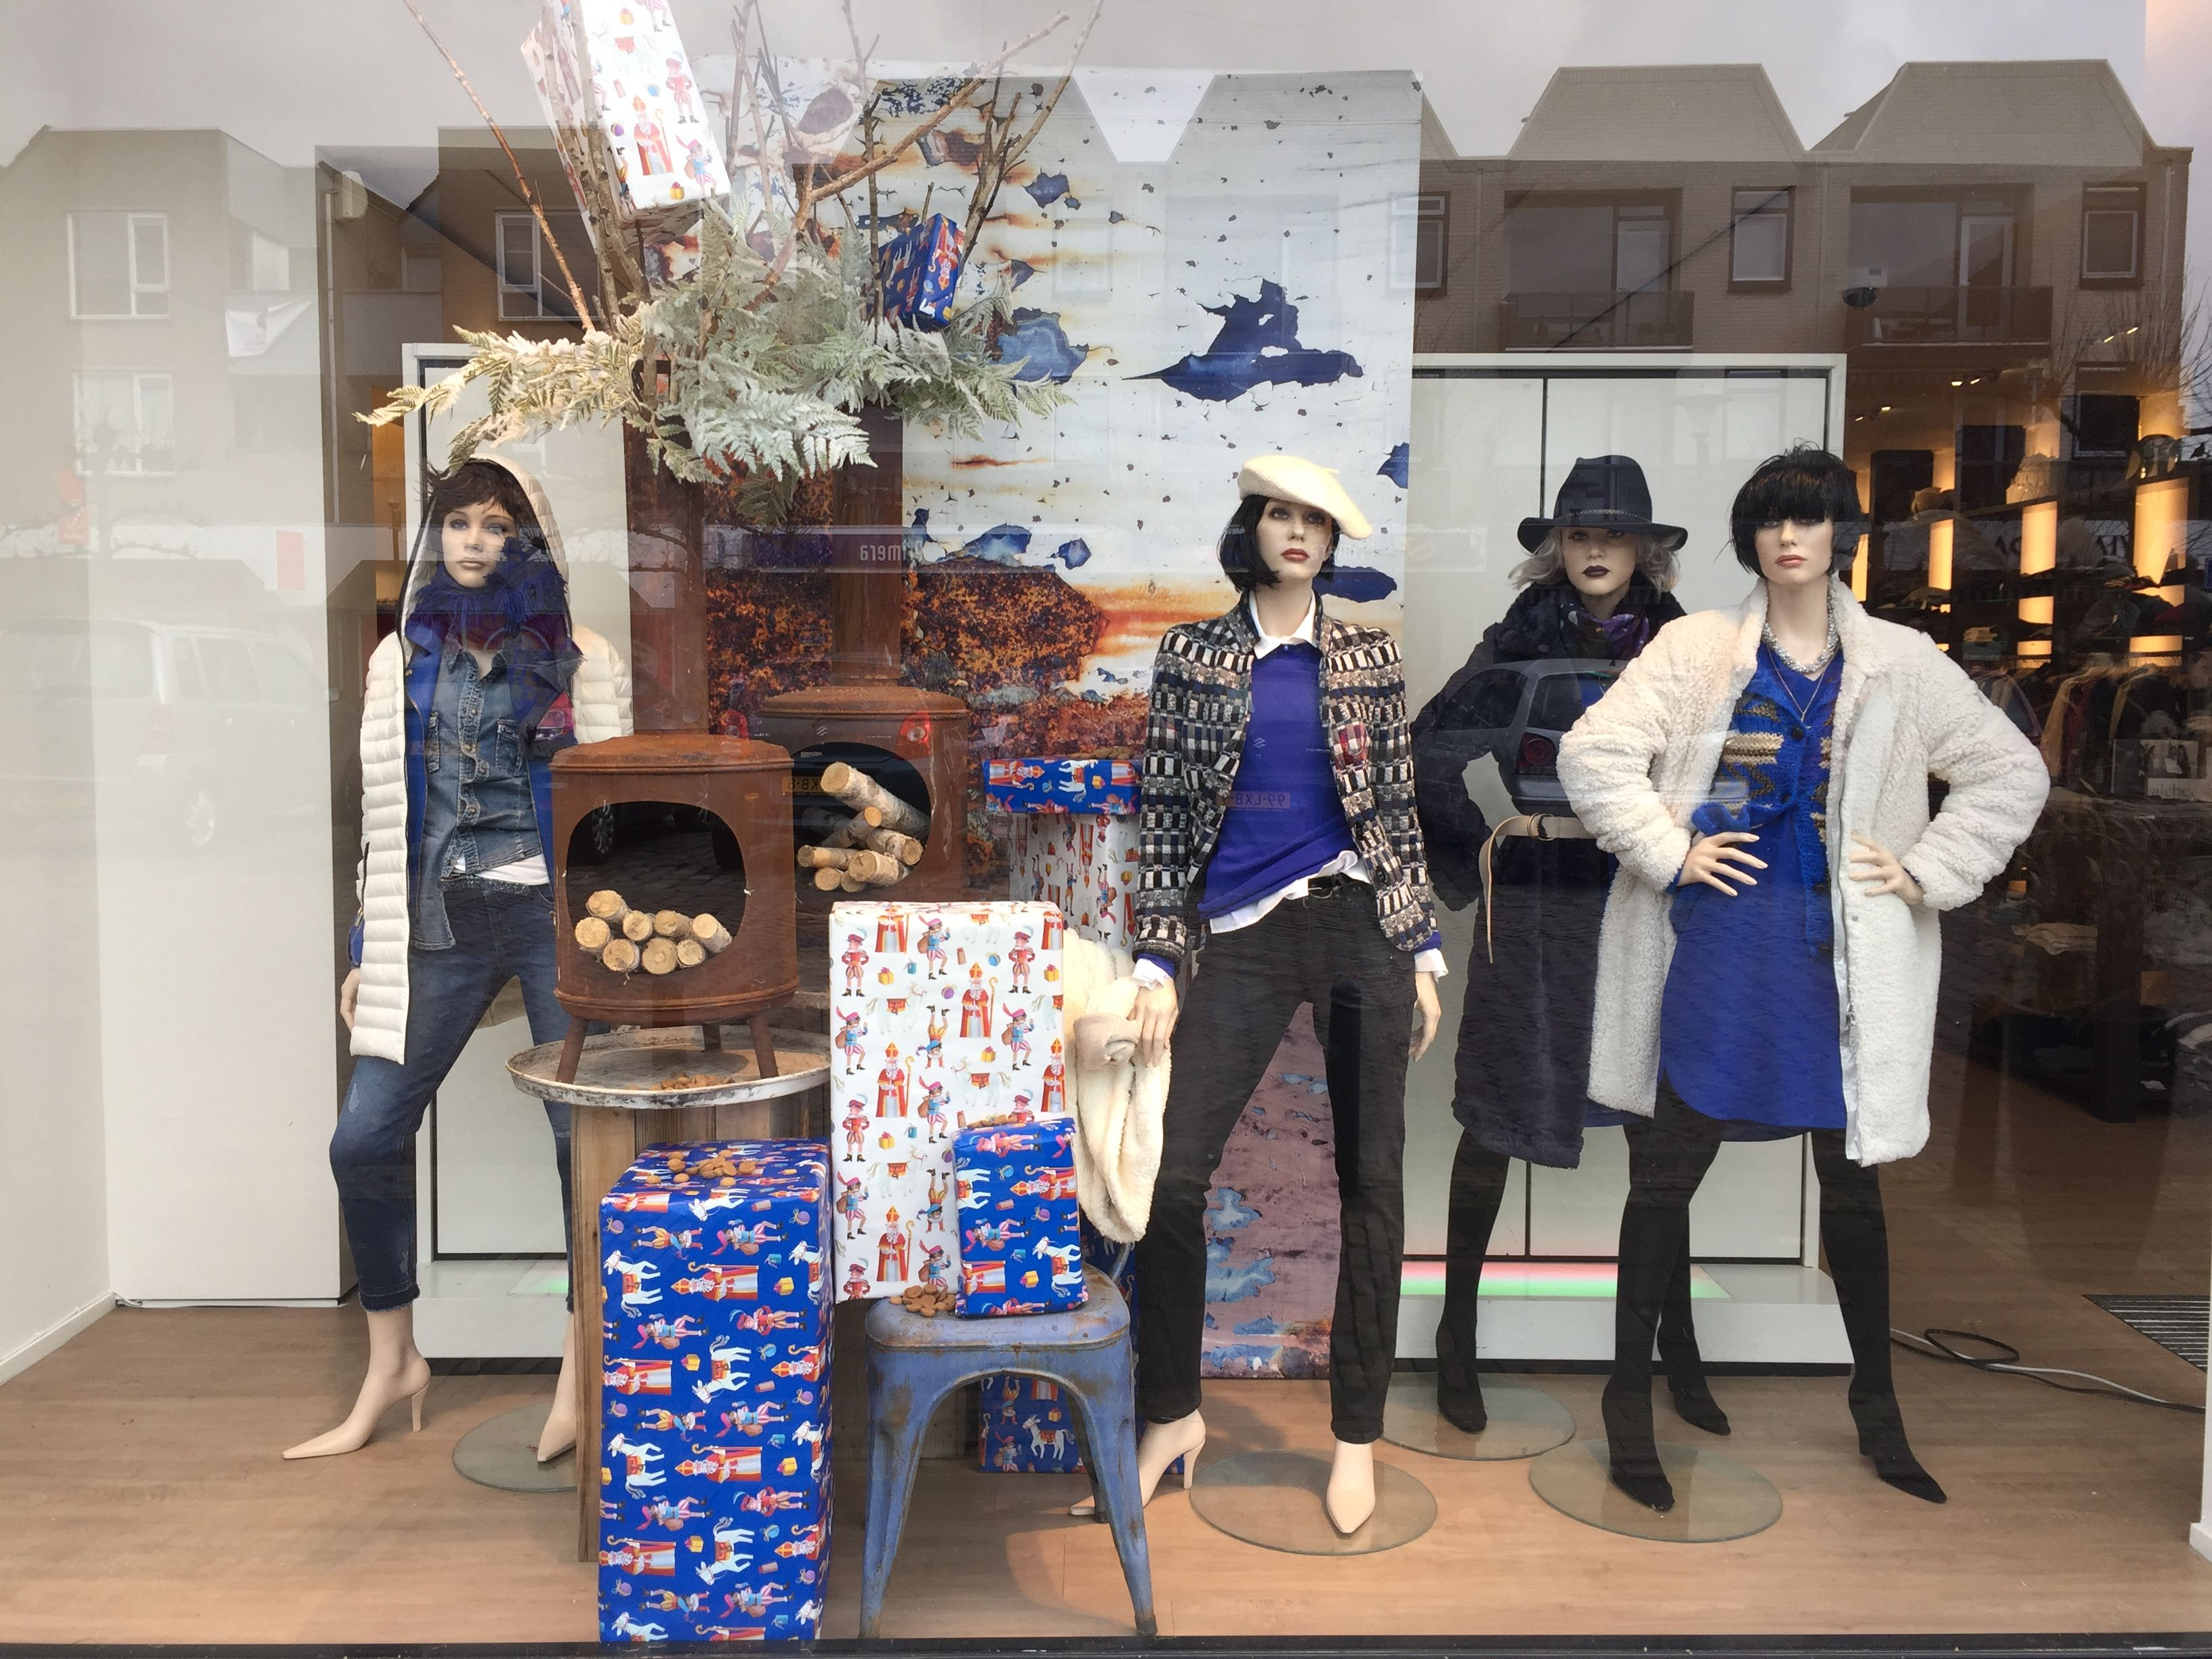 BRRRRR BLUE is the colour of this winter! New window displays.